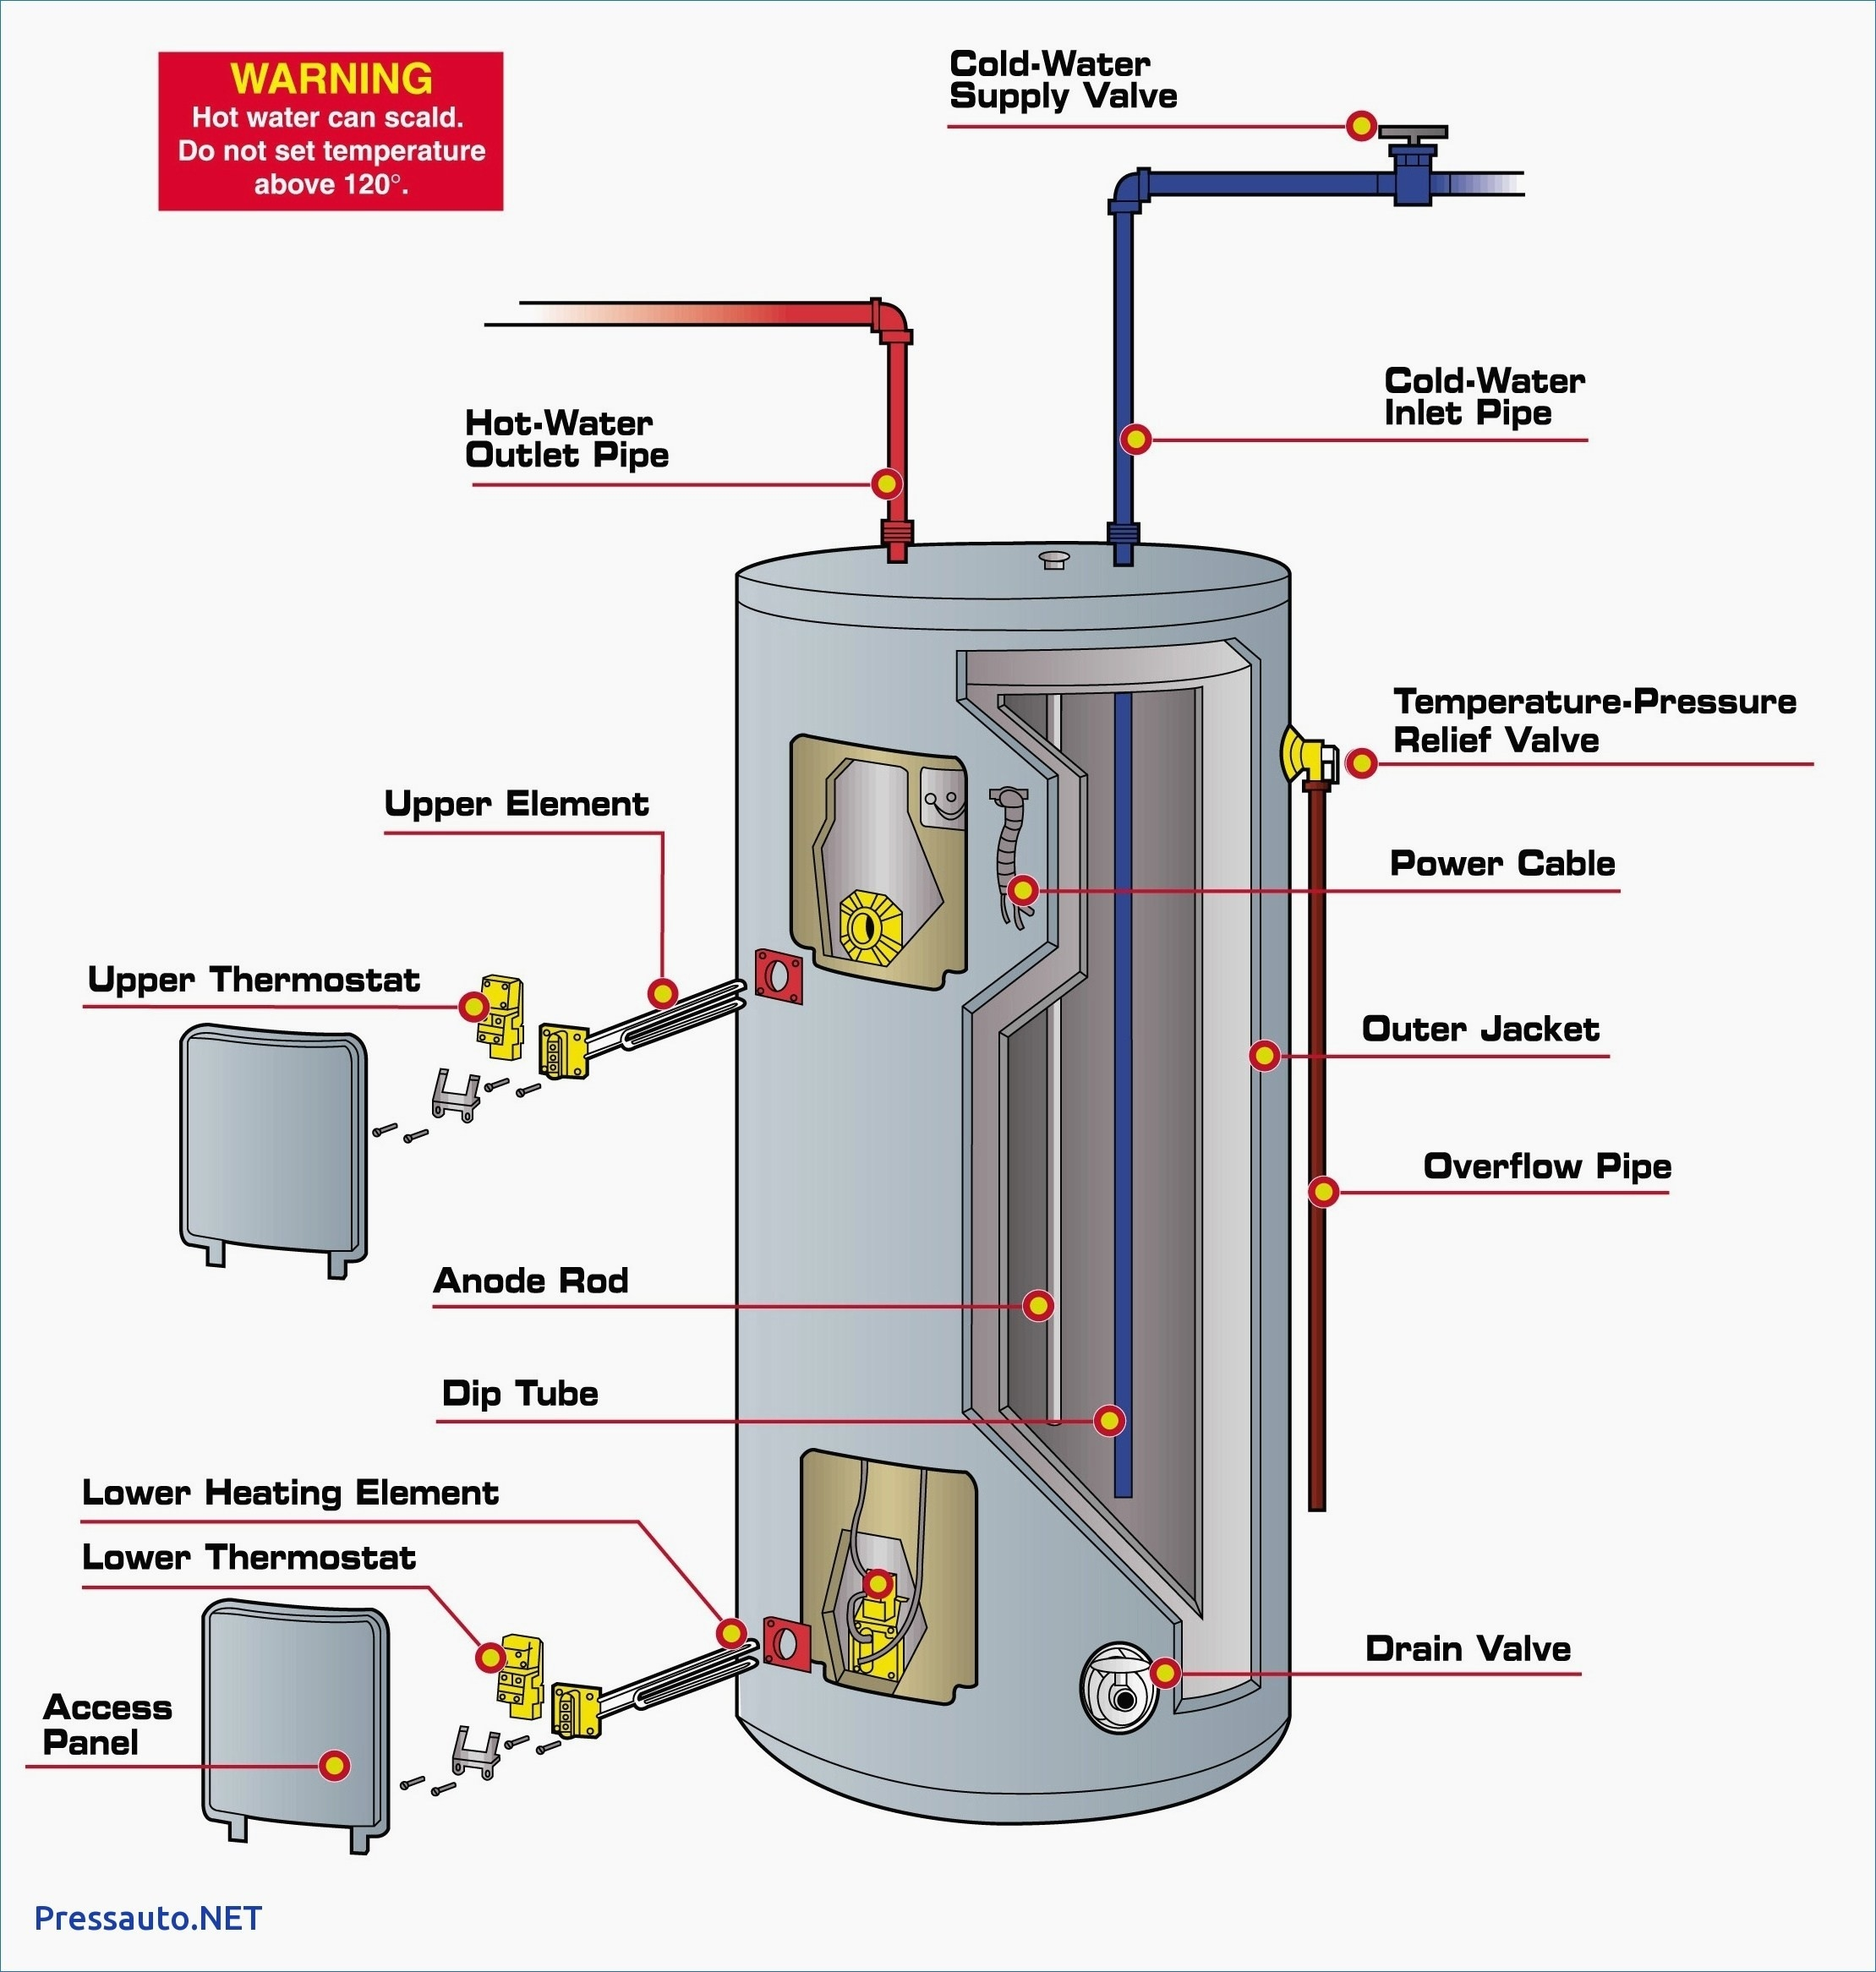 Wiring Diagram for Hot Water Heater thermostat - Wiring Diagram Electric Water Heater Fresh New Hot Water Heater Wiring Diagram Diagram 12d